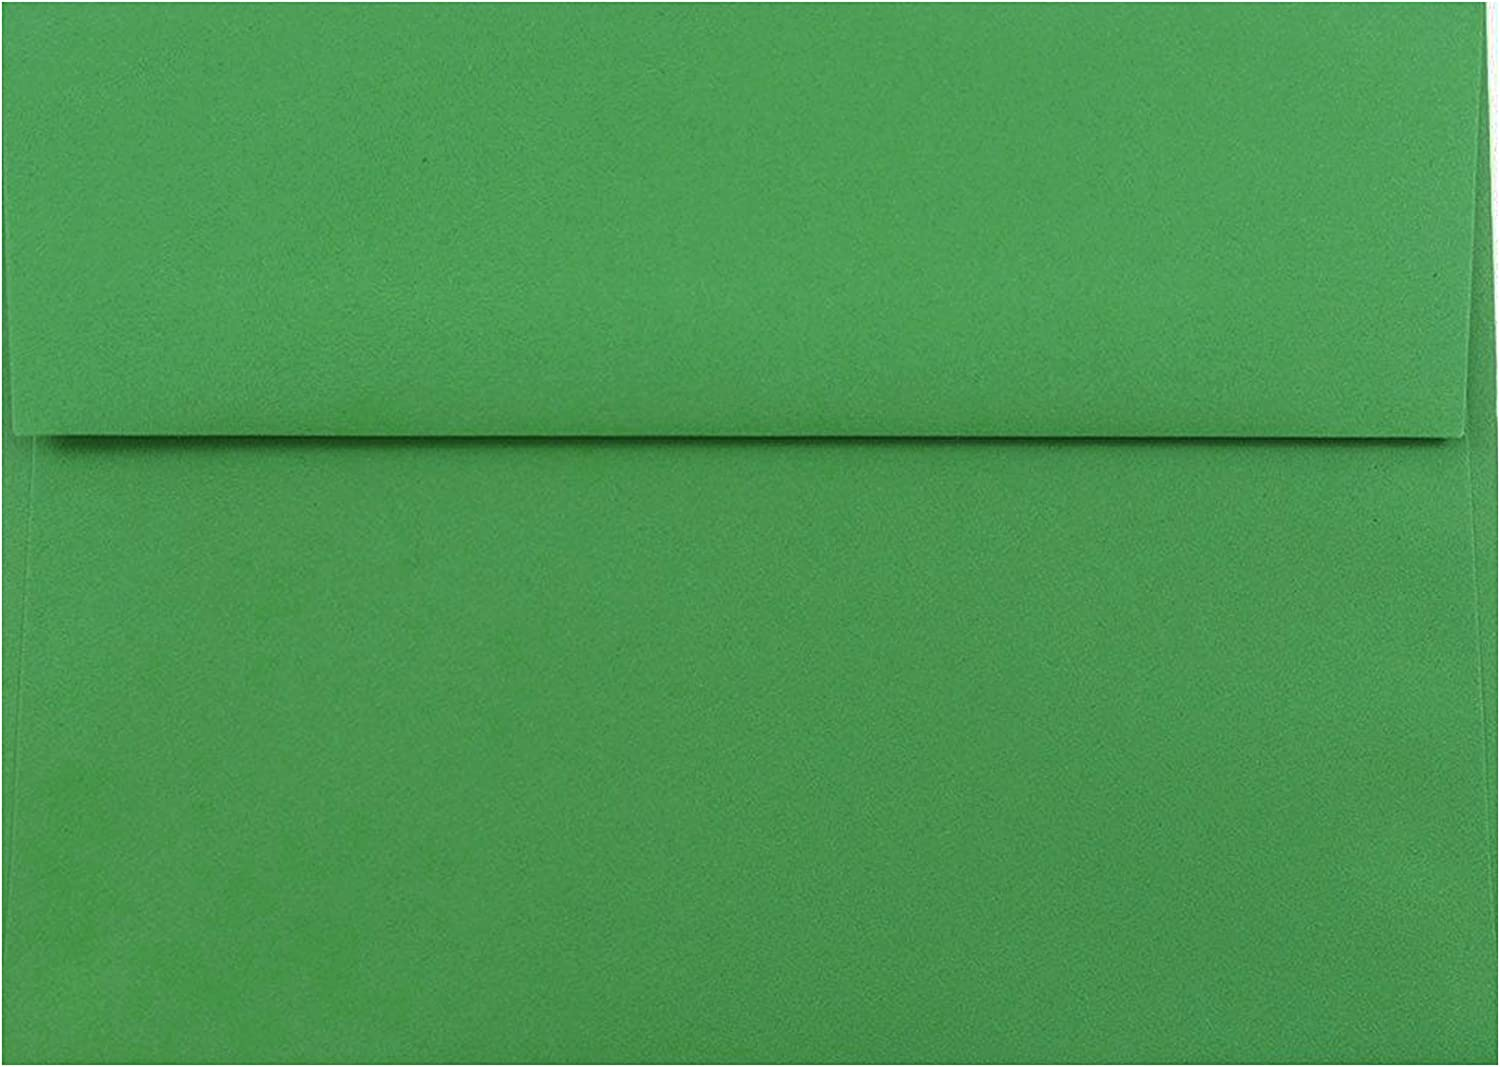 3-5//8 X 5-1//8 Holiday Green 100 Boxed A1 Envelopes for 3-3//8 X 4-7//8 Response Enclosure Invitation Announcement Wedding Shower Communion Christening Cards The Envelope Gallery